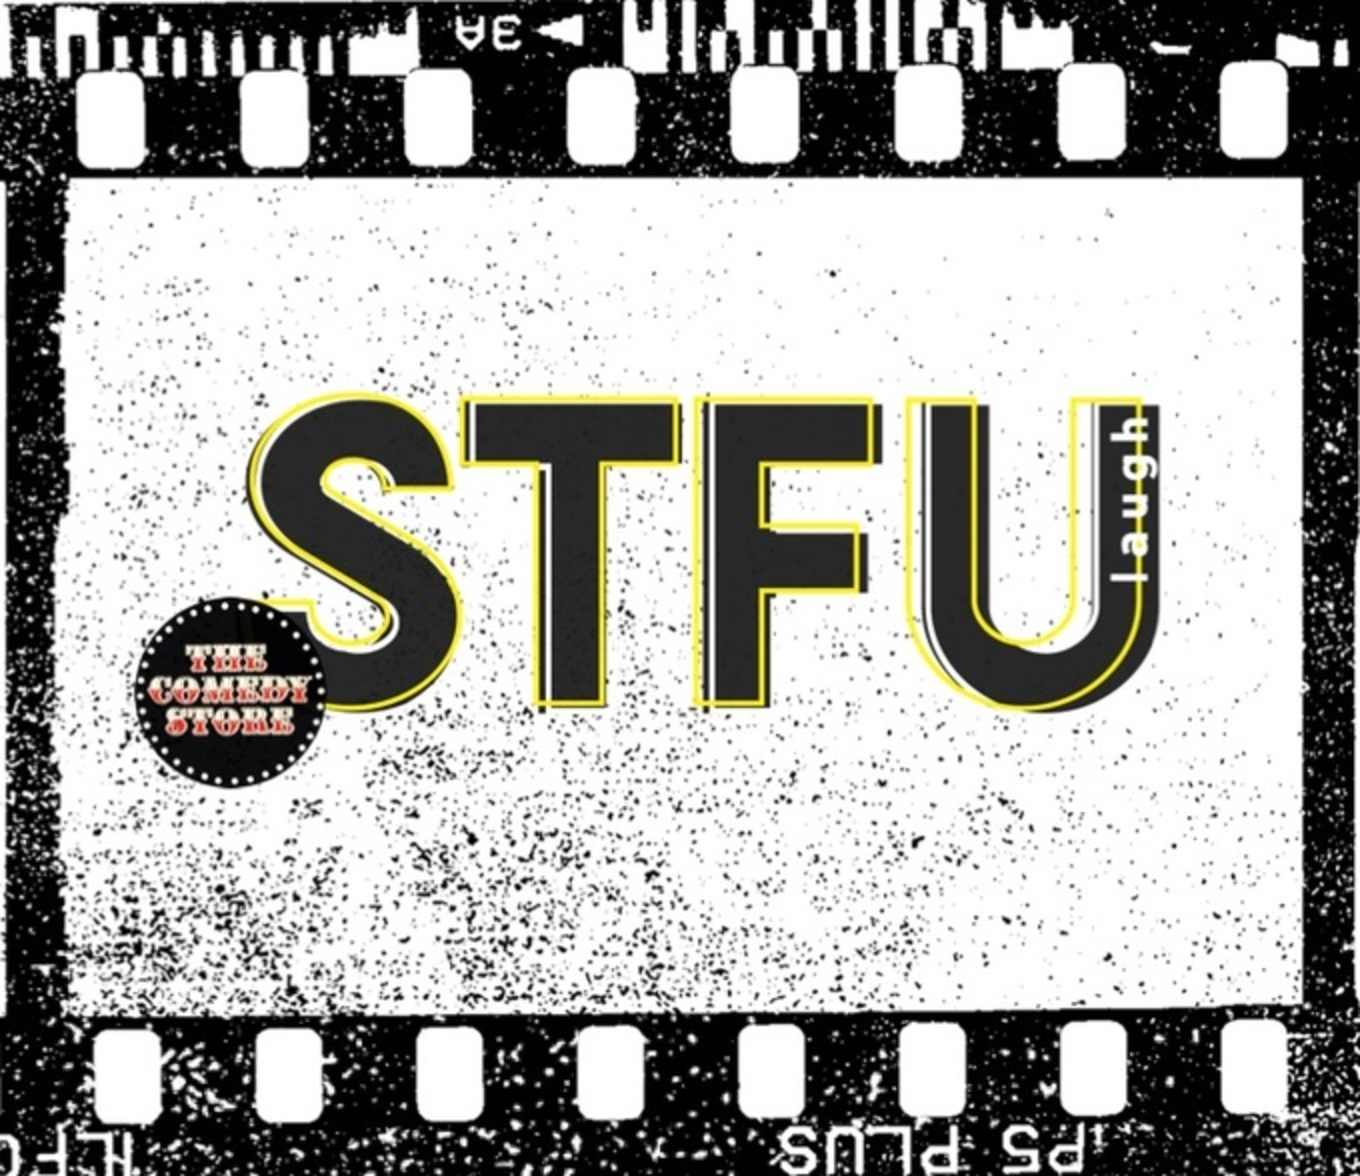 What is stfu stand for